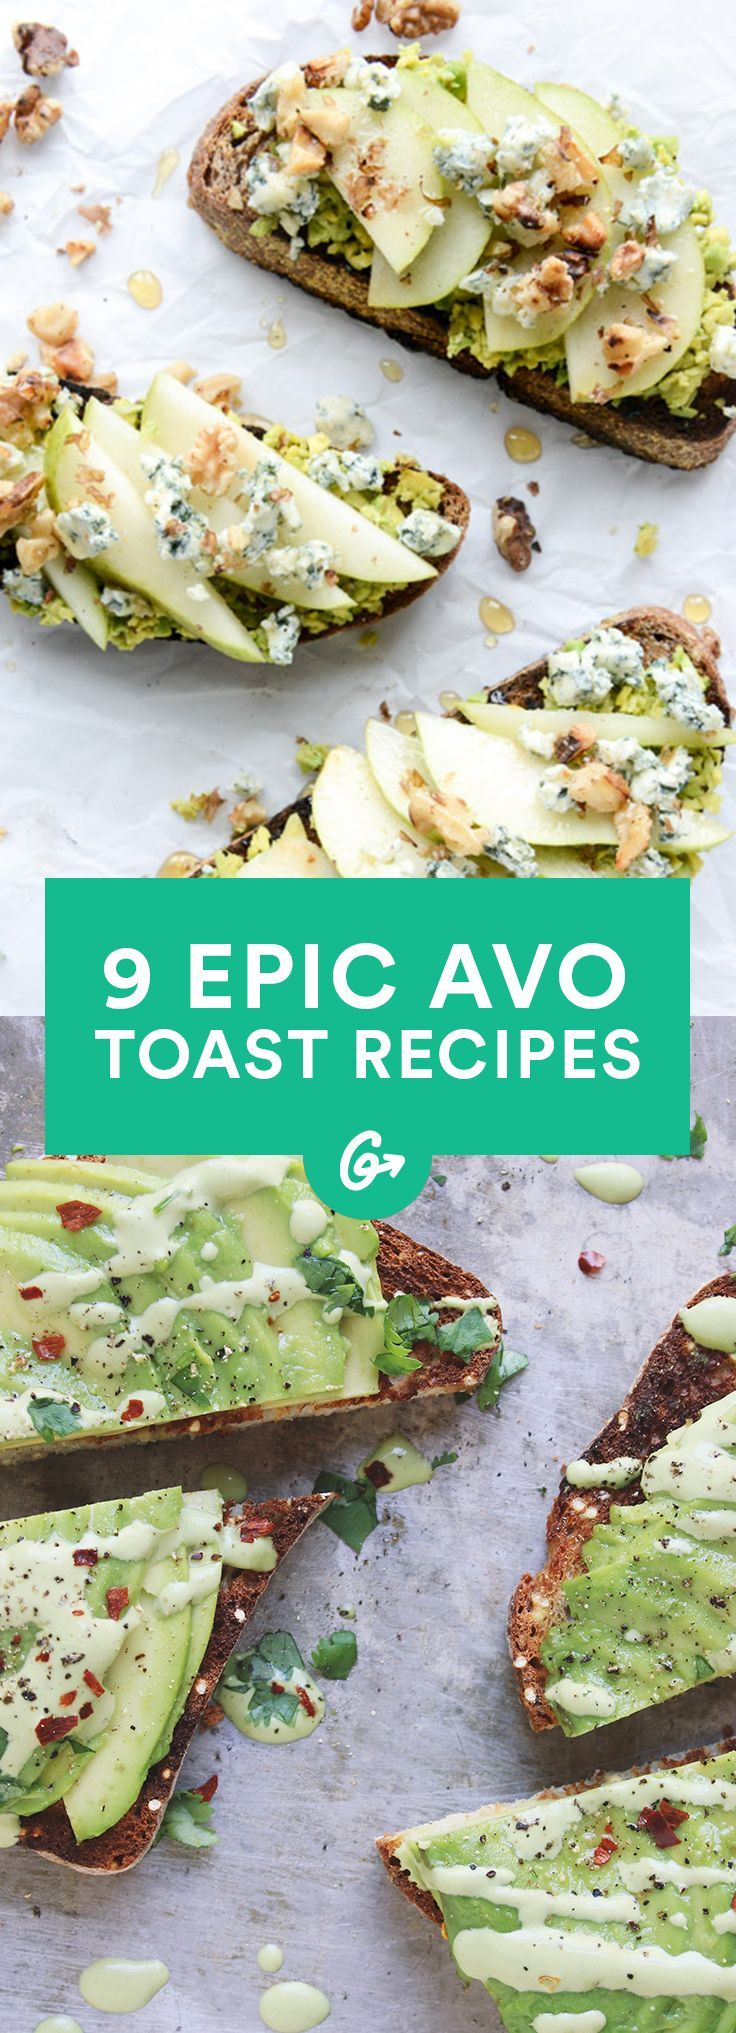 9 Excuses for Eating Avocado Toast Every Single Day #healthy #recipes #avocado http://greatist.com/eat/avocado-toast-recipes